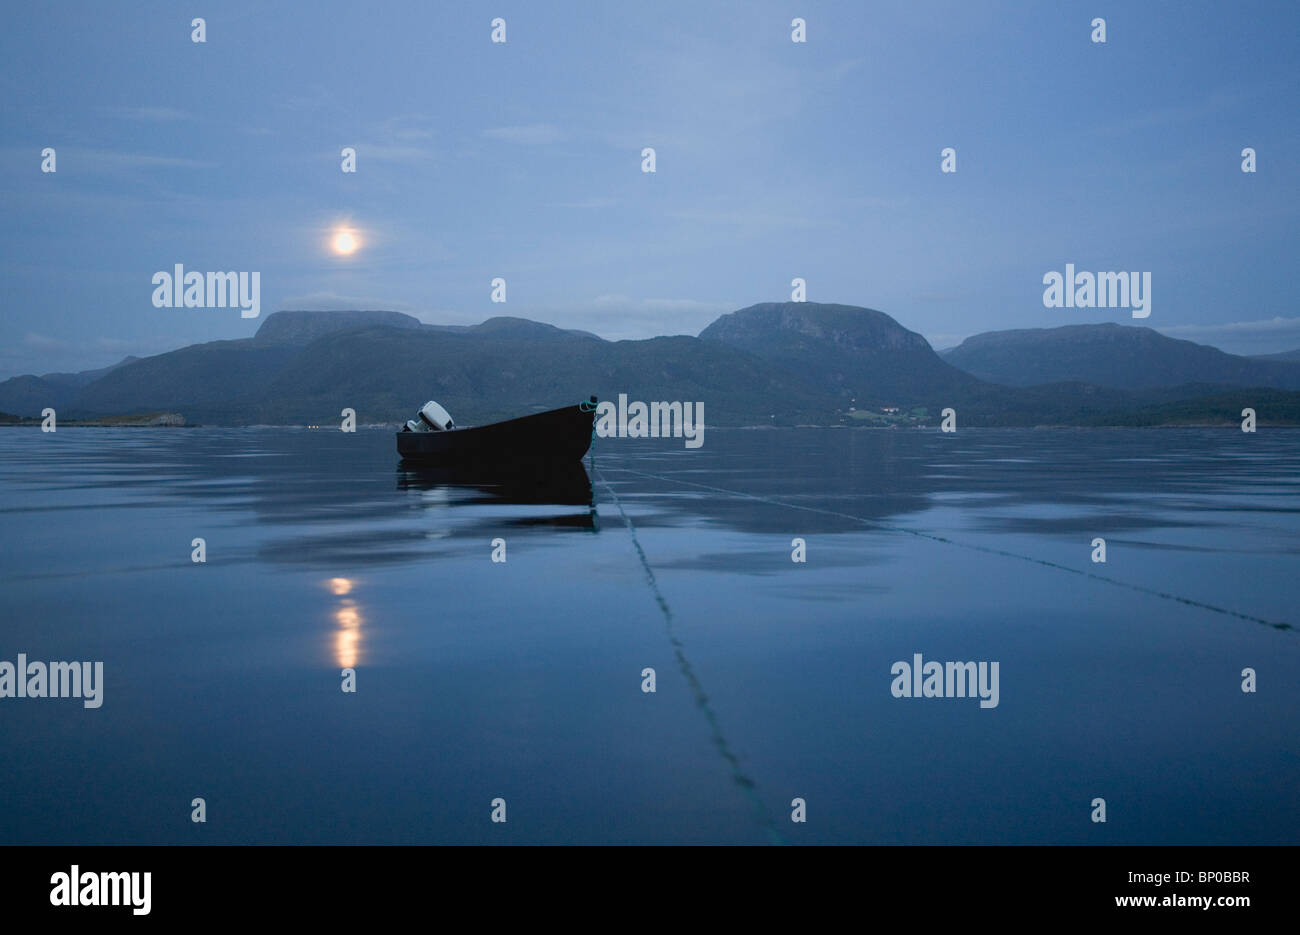 Wooden boat on calm sea at night - Stock Image